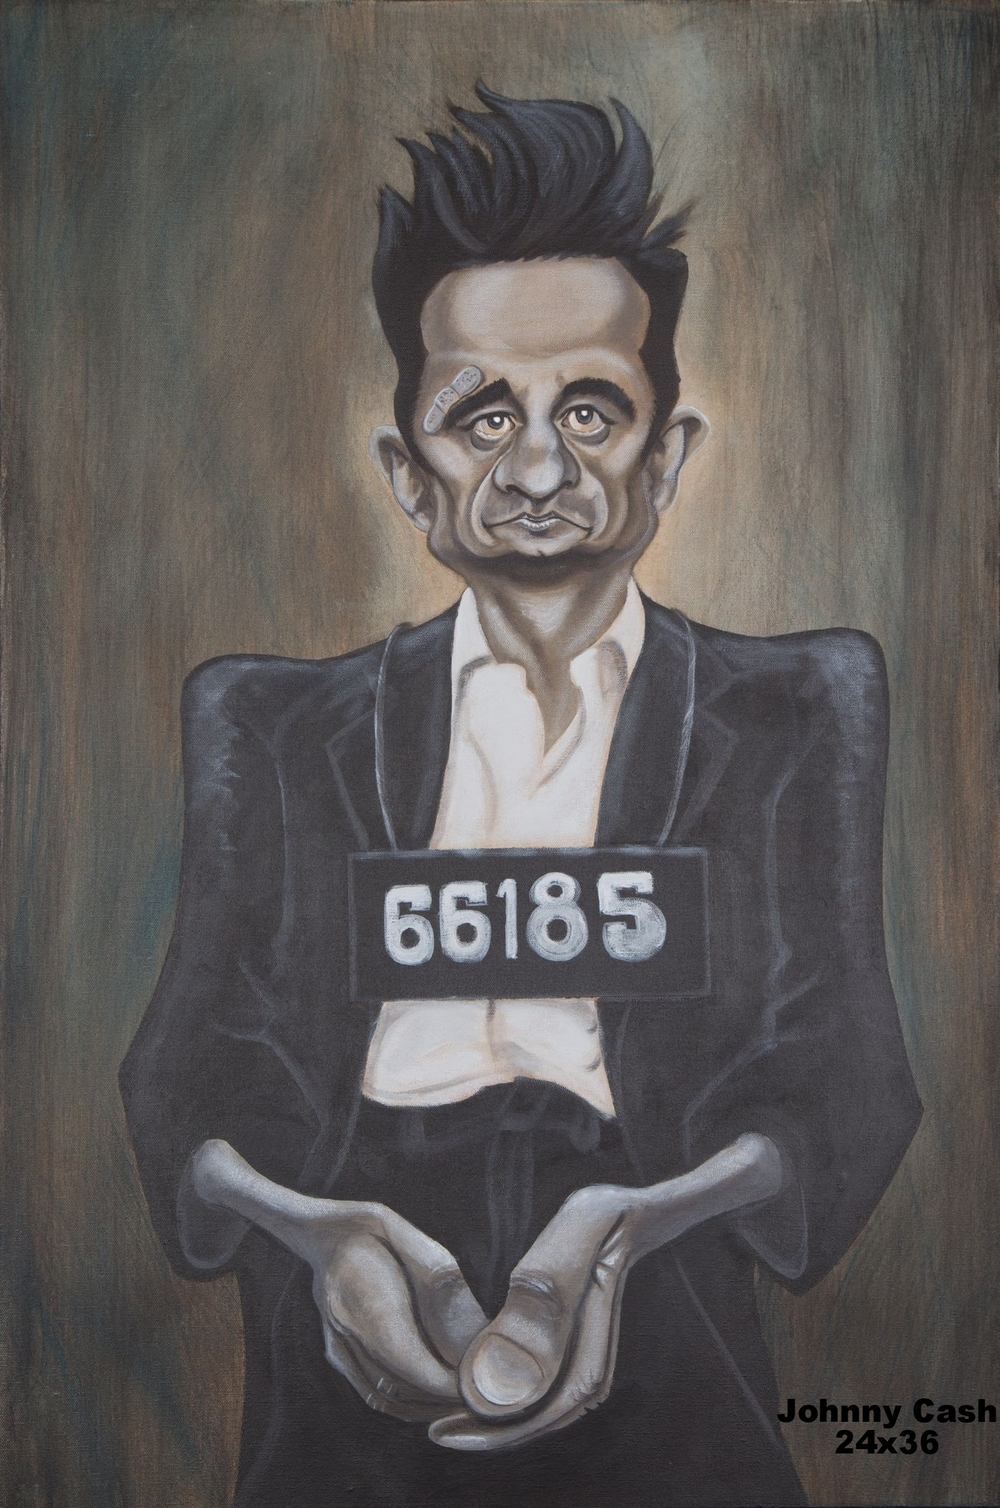 Johnny Cash 24 x 36.jpeg